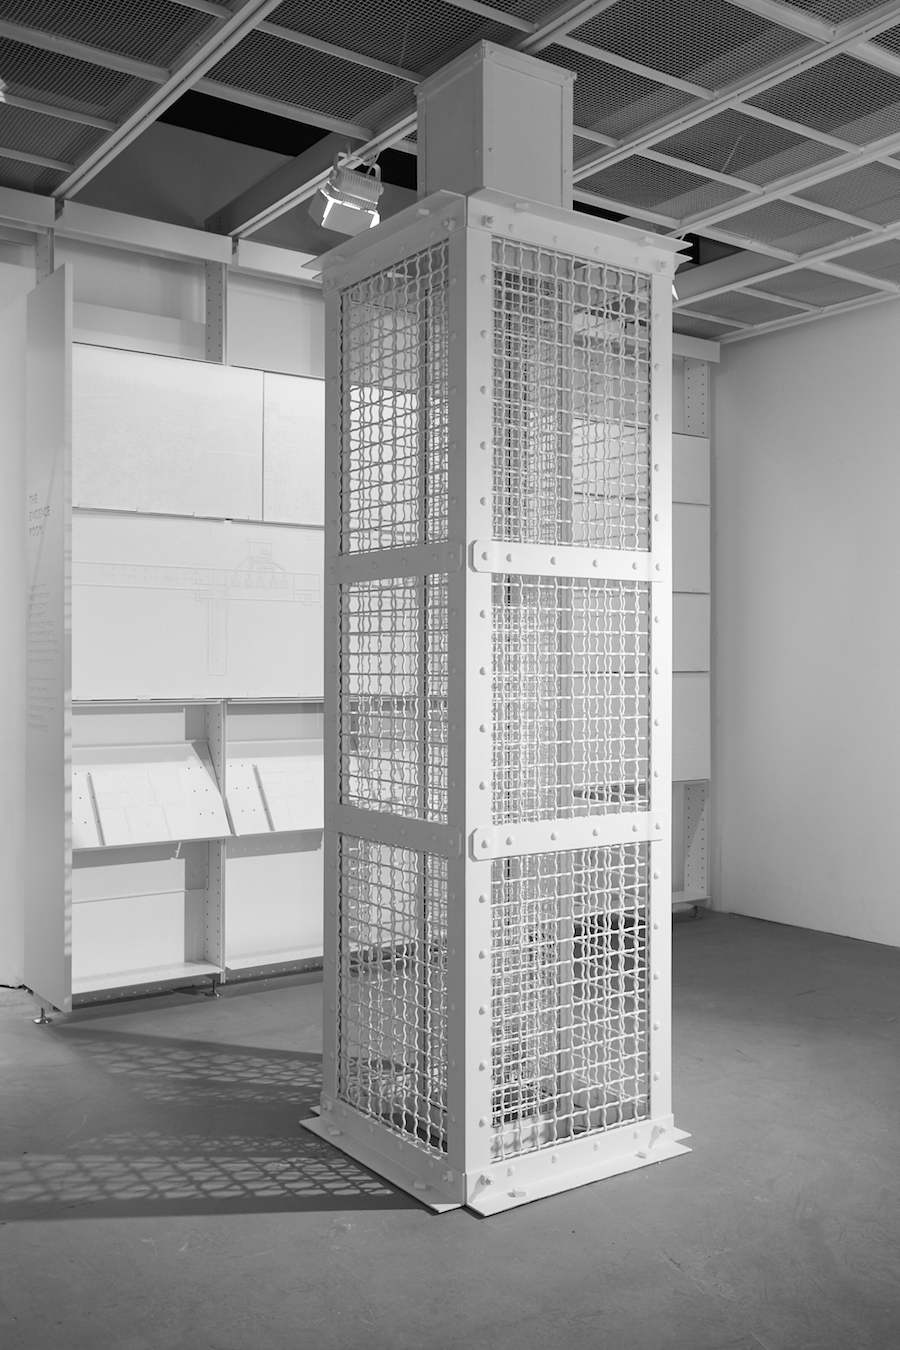 Model of Auschwitz gas column in The Evidence Room. Photo by Fred Hunsberger.